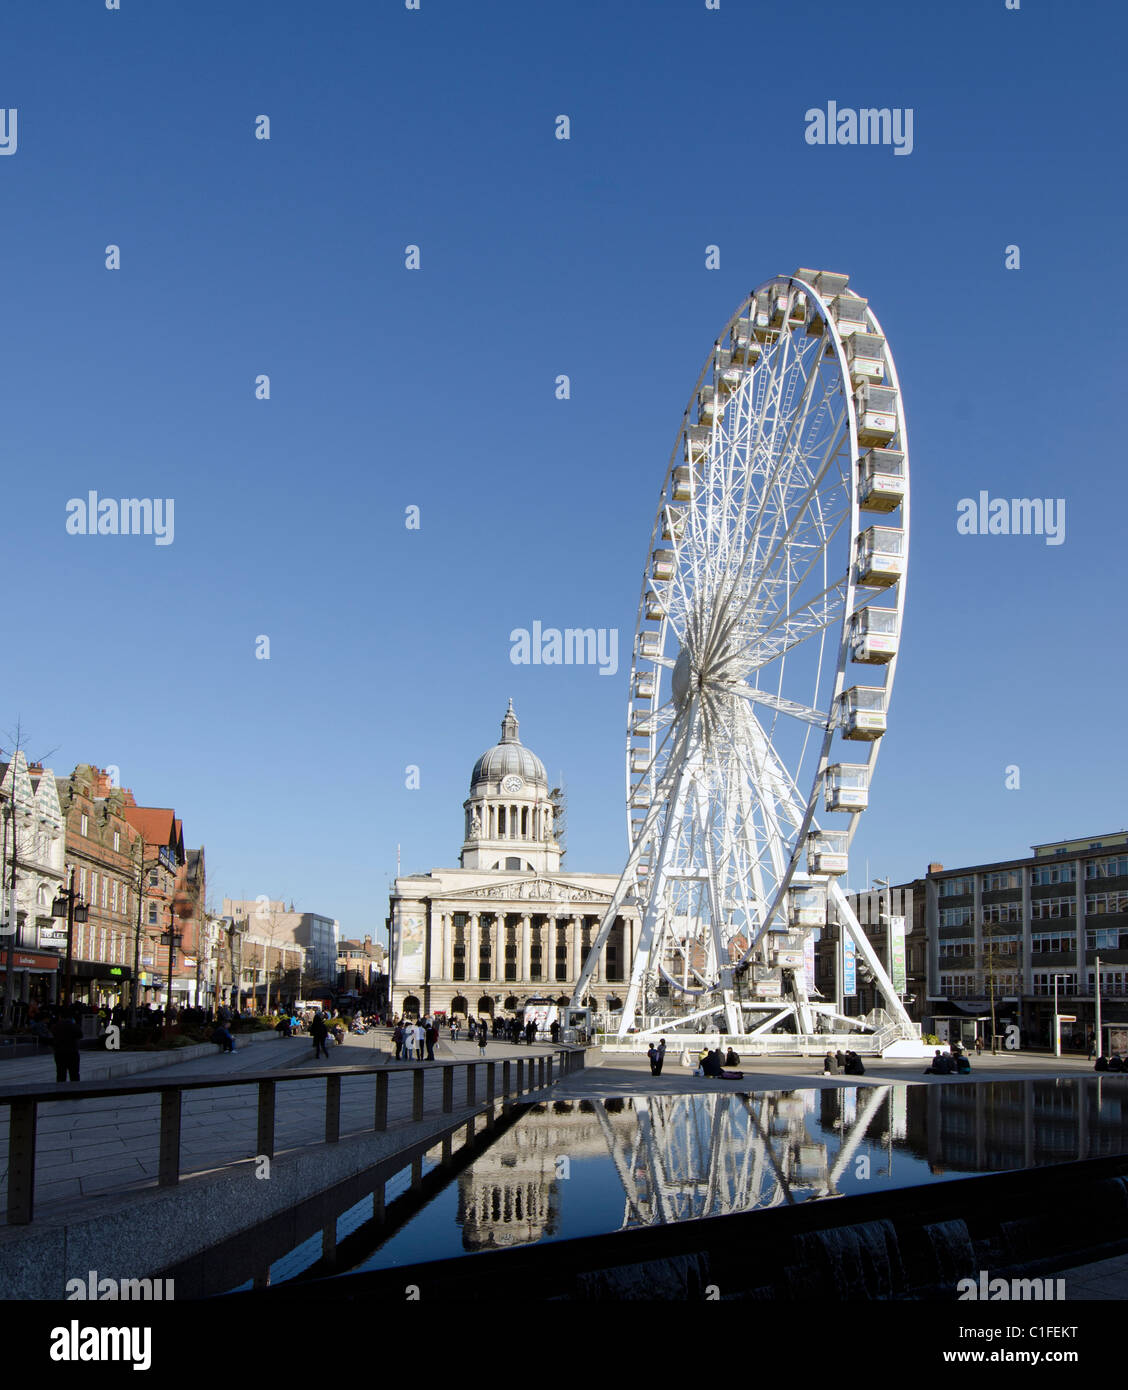 Ferris Wheel in the Old Market Square in Nottingham, UK - Stock Image